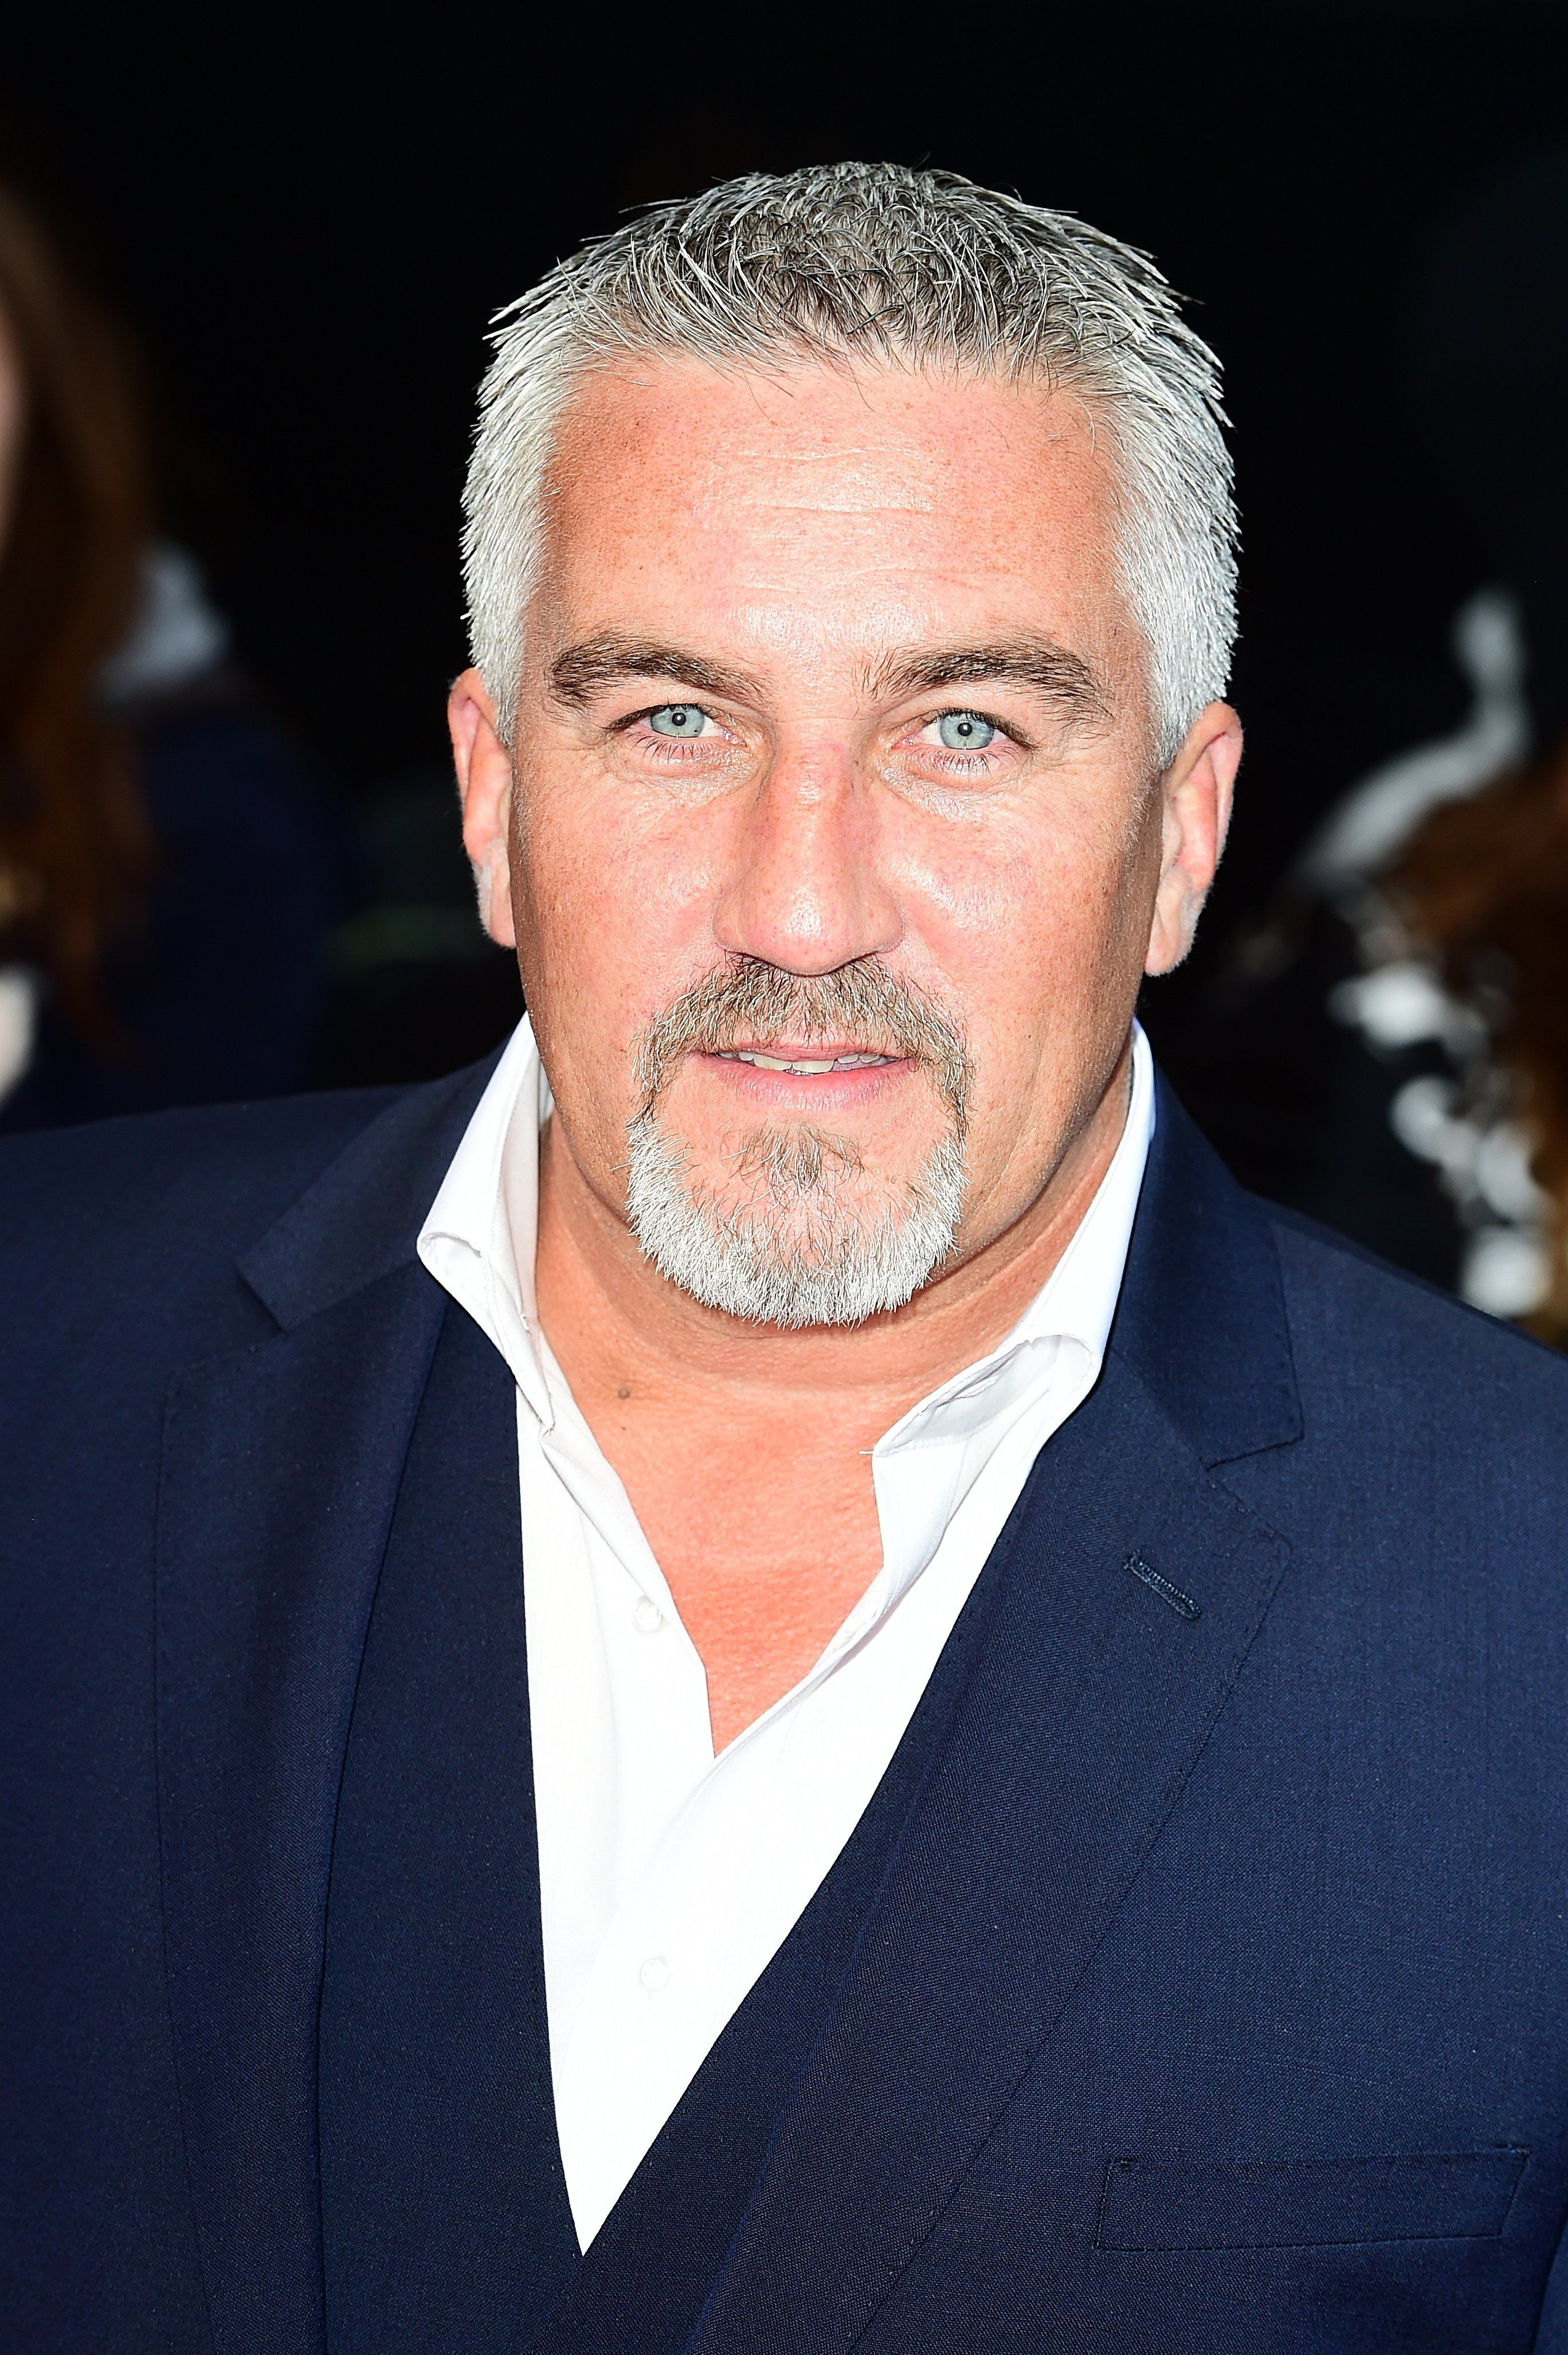 Paul Hollywood 'Devastated' For Causing Offence After Picture Of Him In Nazi Uniform Emerges